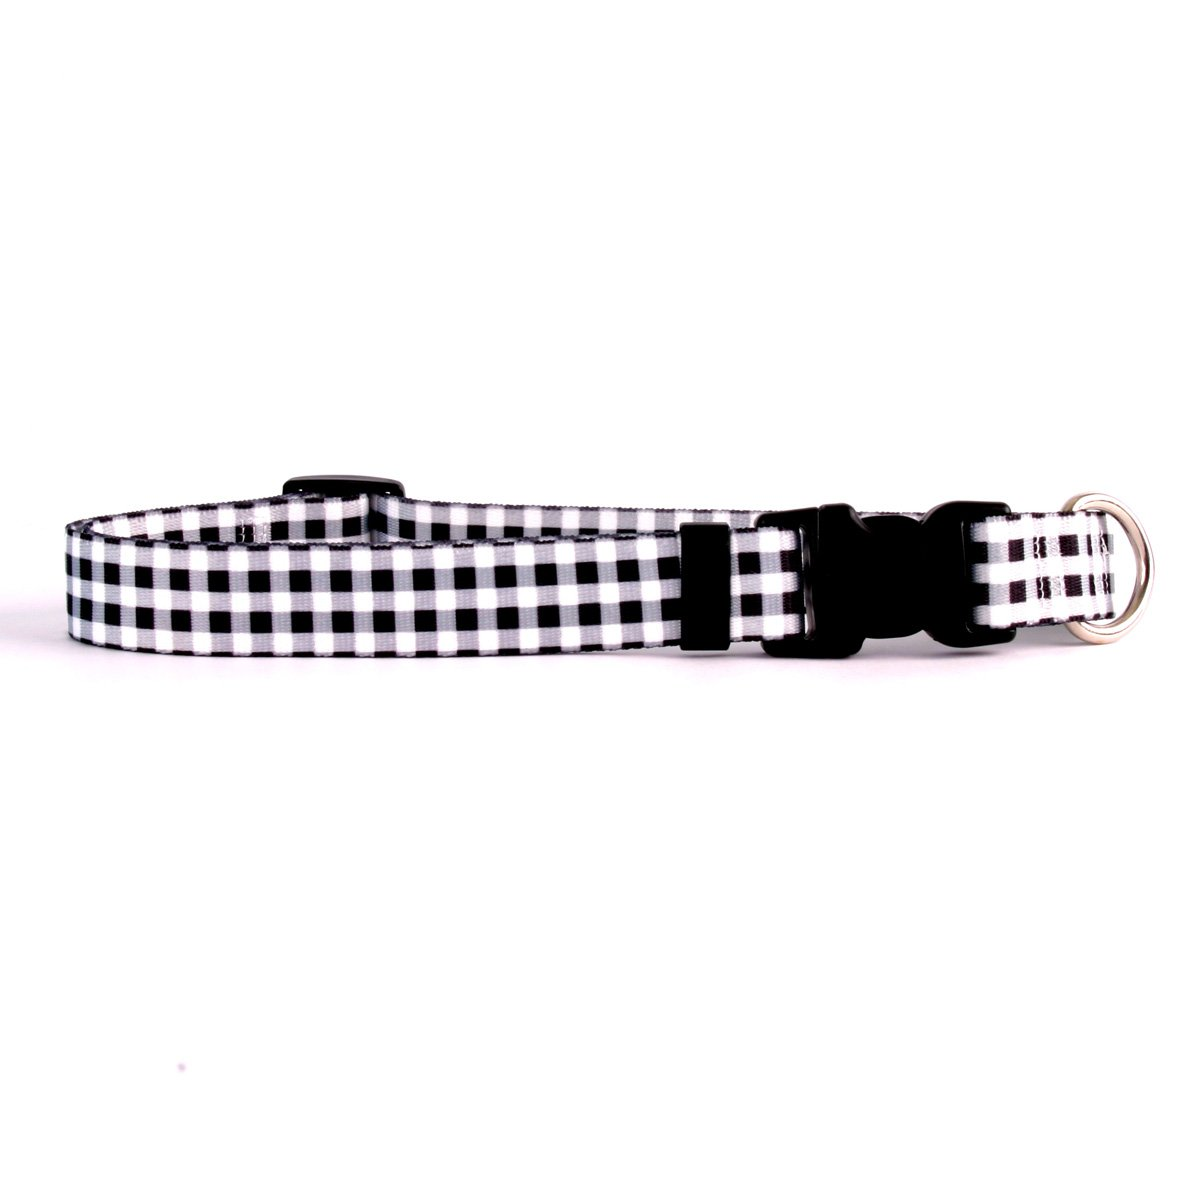 Yellow Dog Design Gingham Black Dog Collar Fits Neck 14 To 20'', Medium 1'' Wide